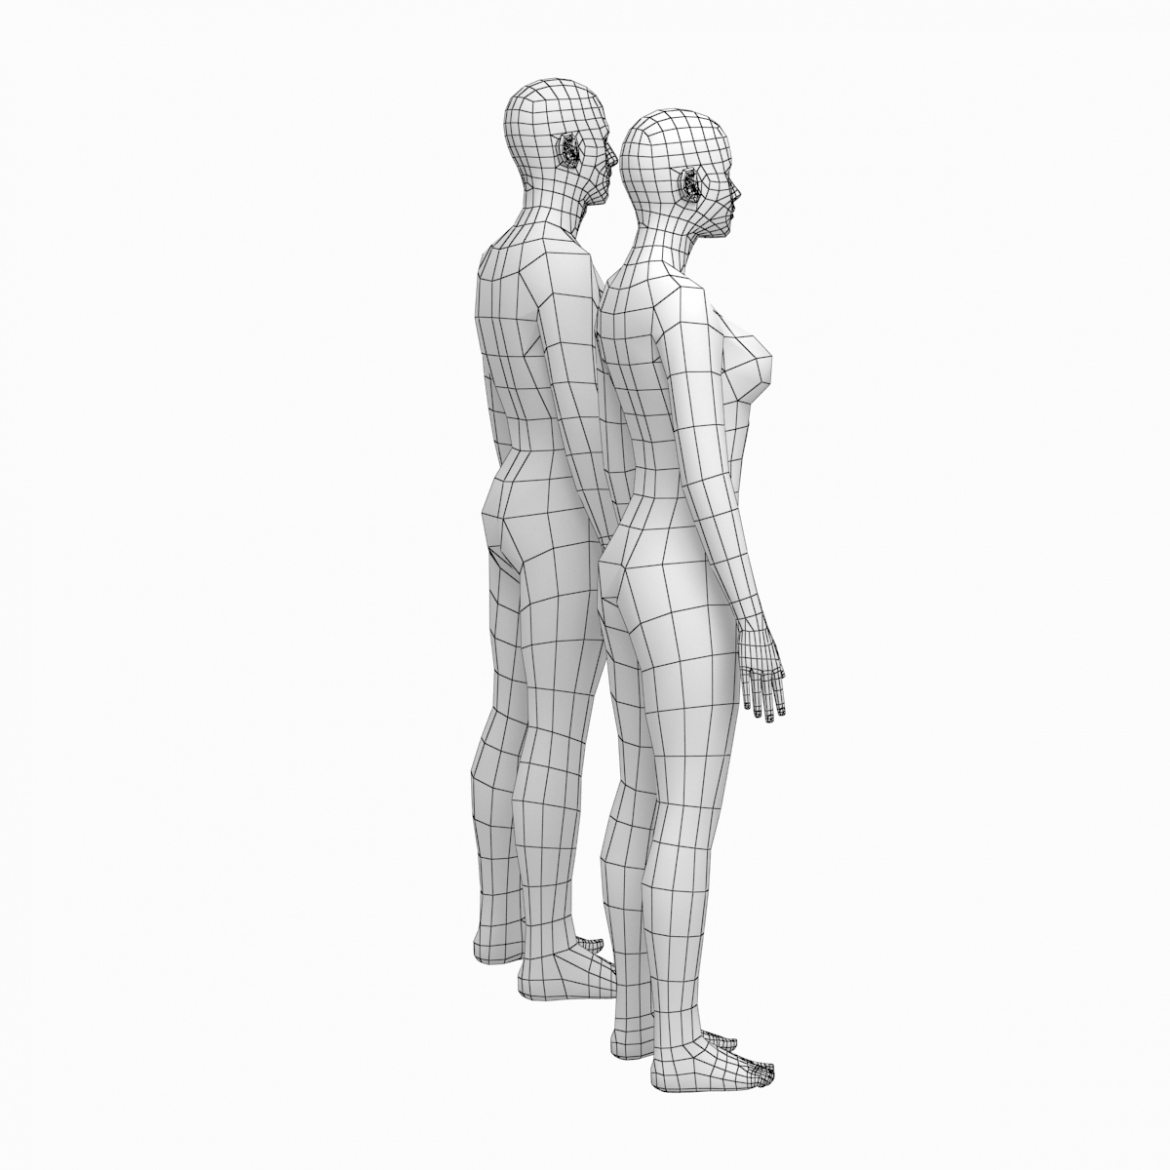 female and male deailed base mesh in rest pose 3d model 3ds max dxf dwg fbx c4d dae ma mb  obj 301291